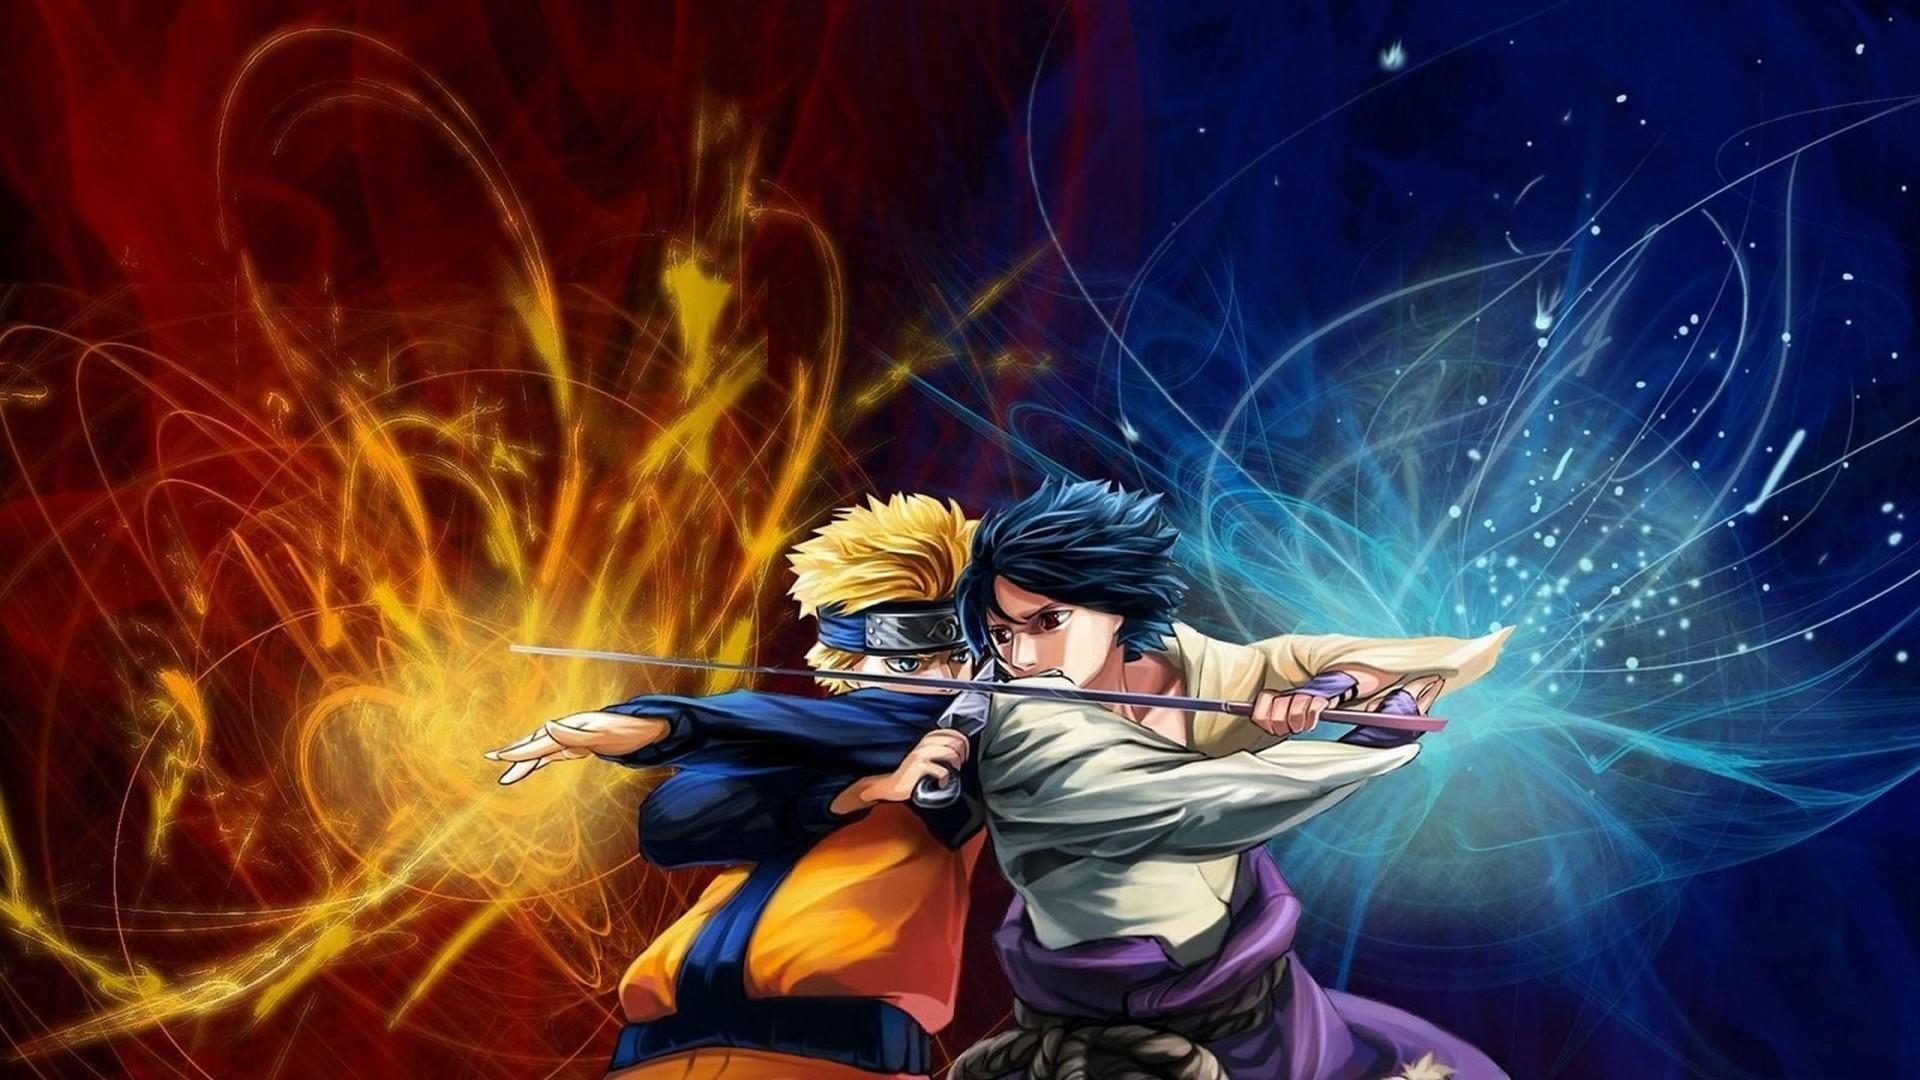 73 Naruto And Sasuke Wallpapers On Wallpapersafari